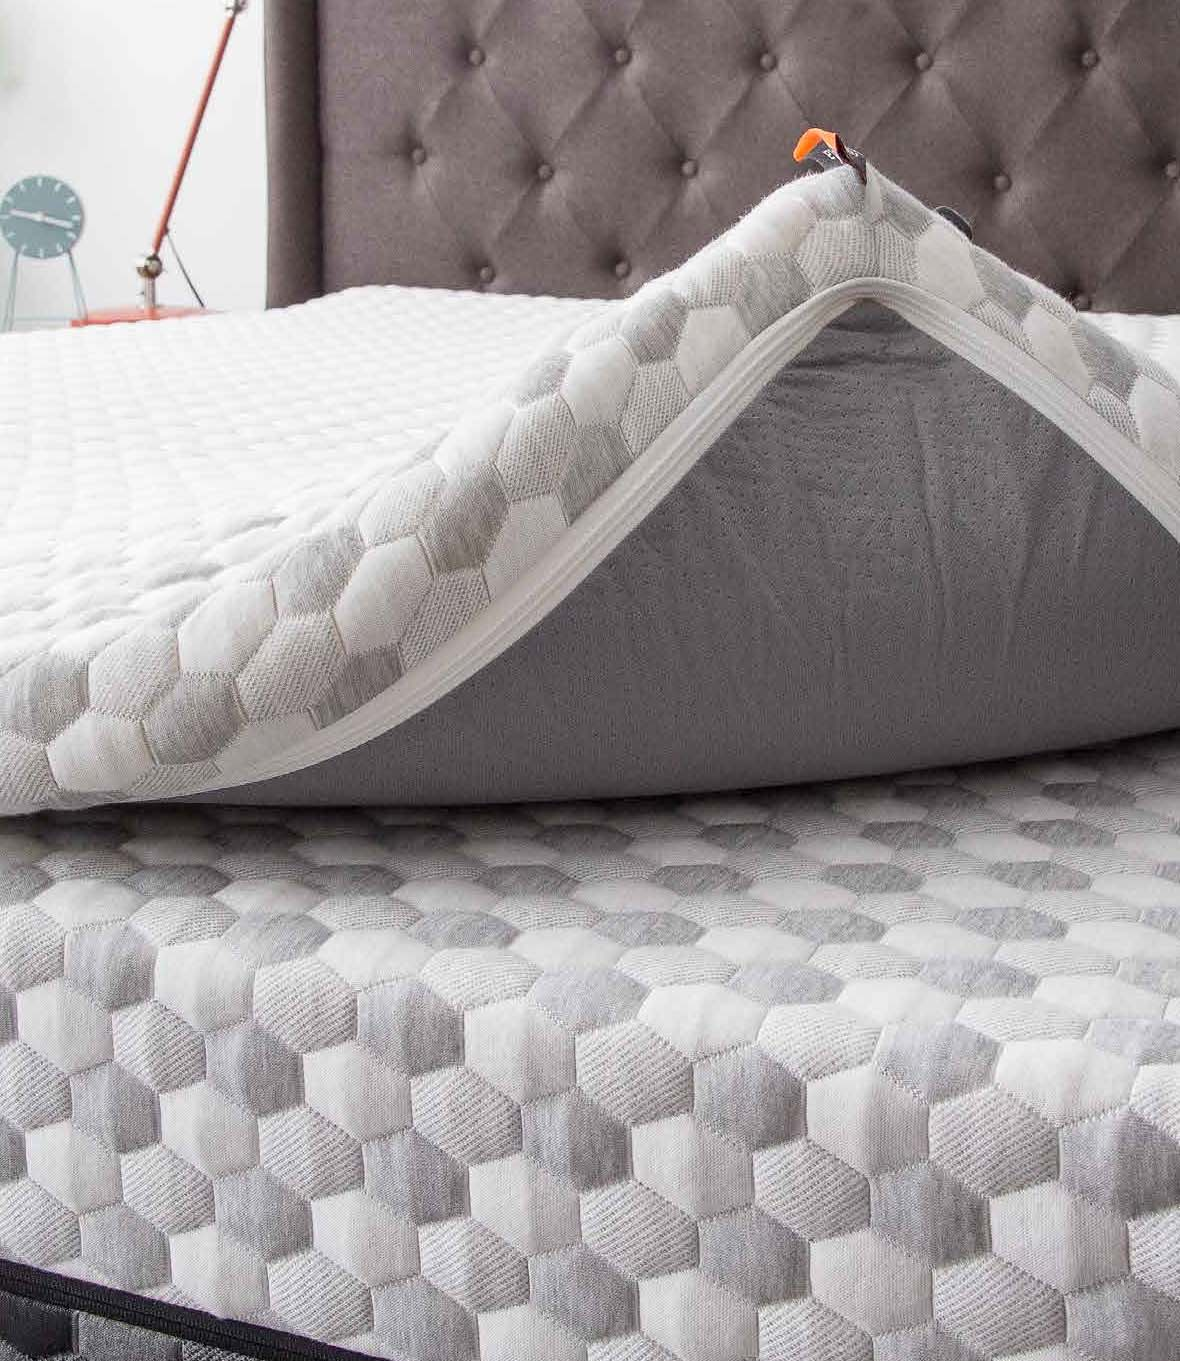 Extra Firm Mattress Topper Copper Mattress Topper A Cooling Memory Foam Topper Layla Sleep